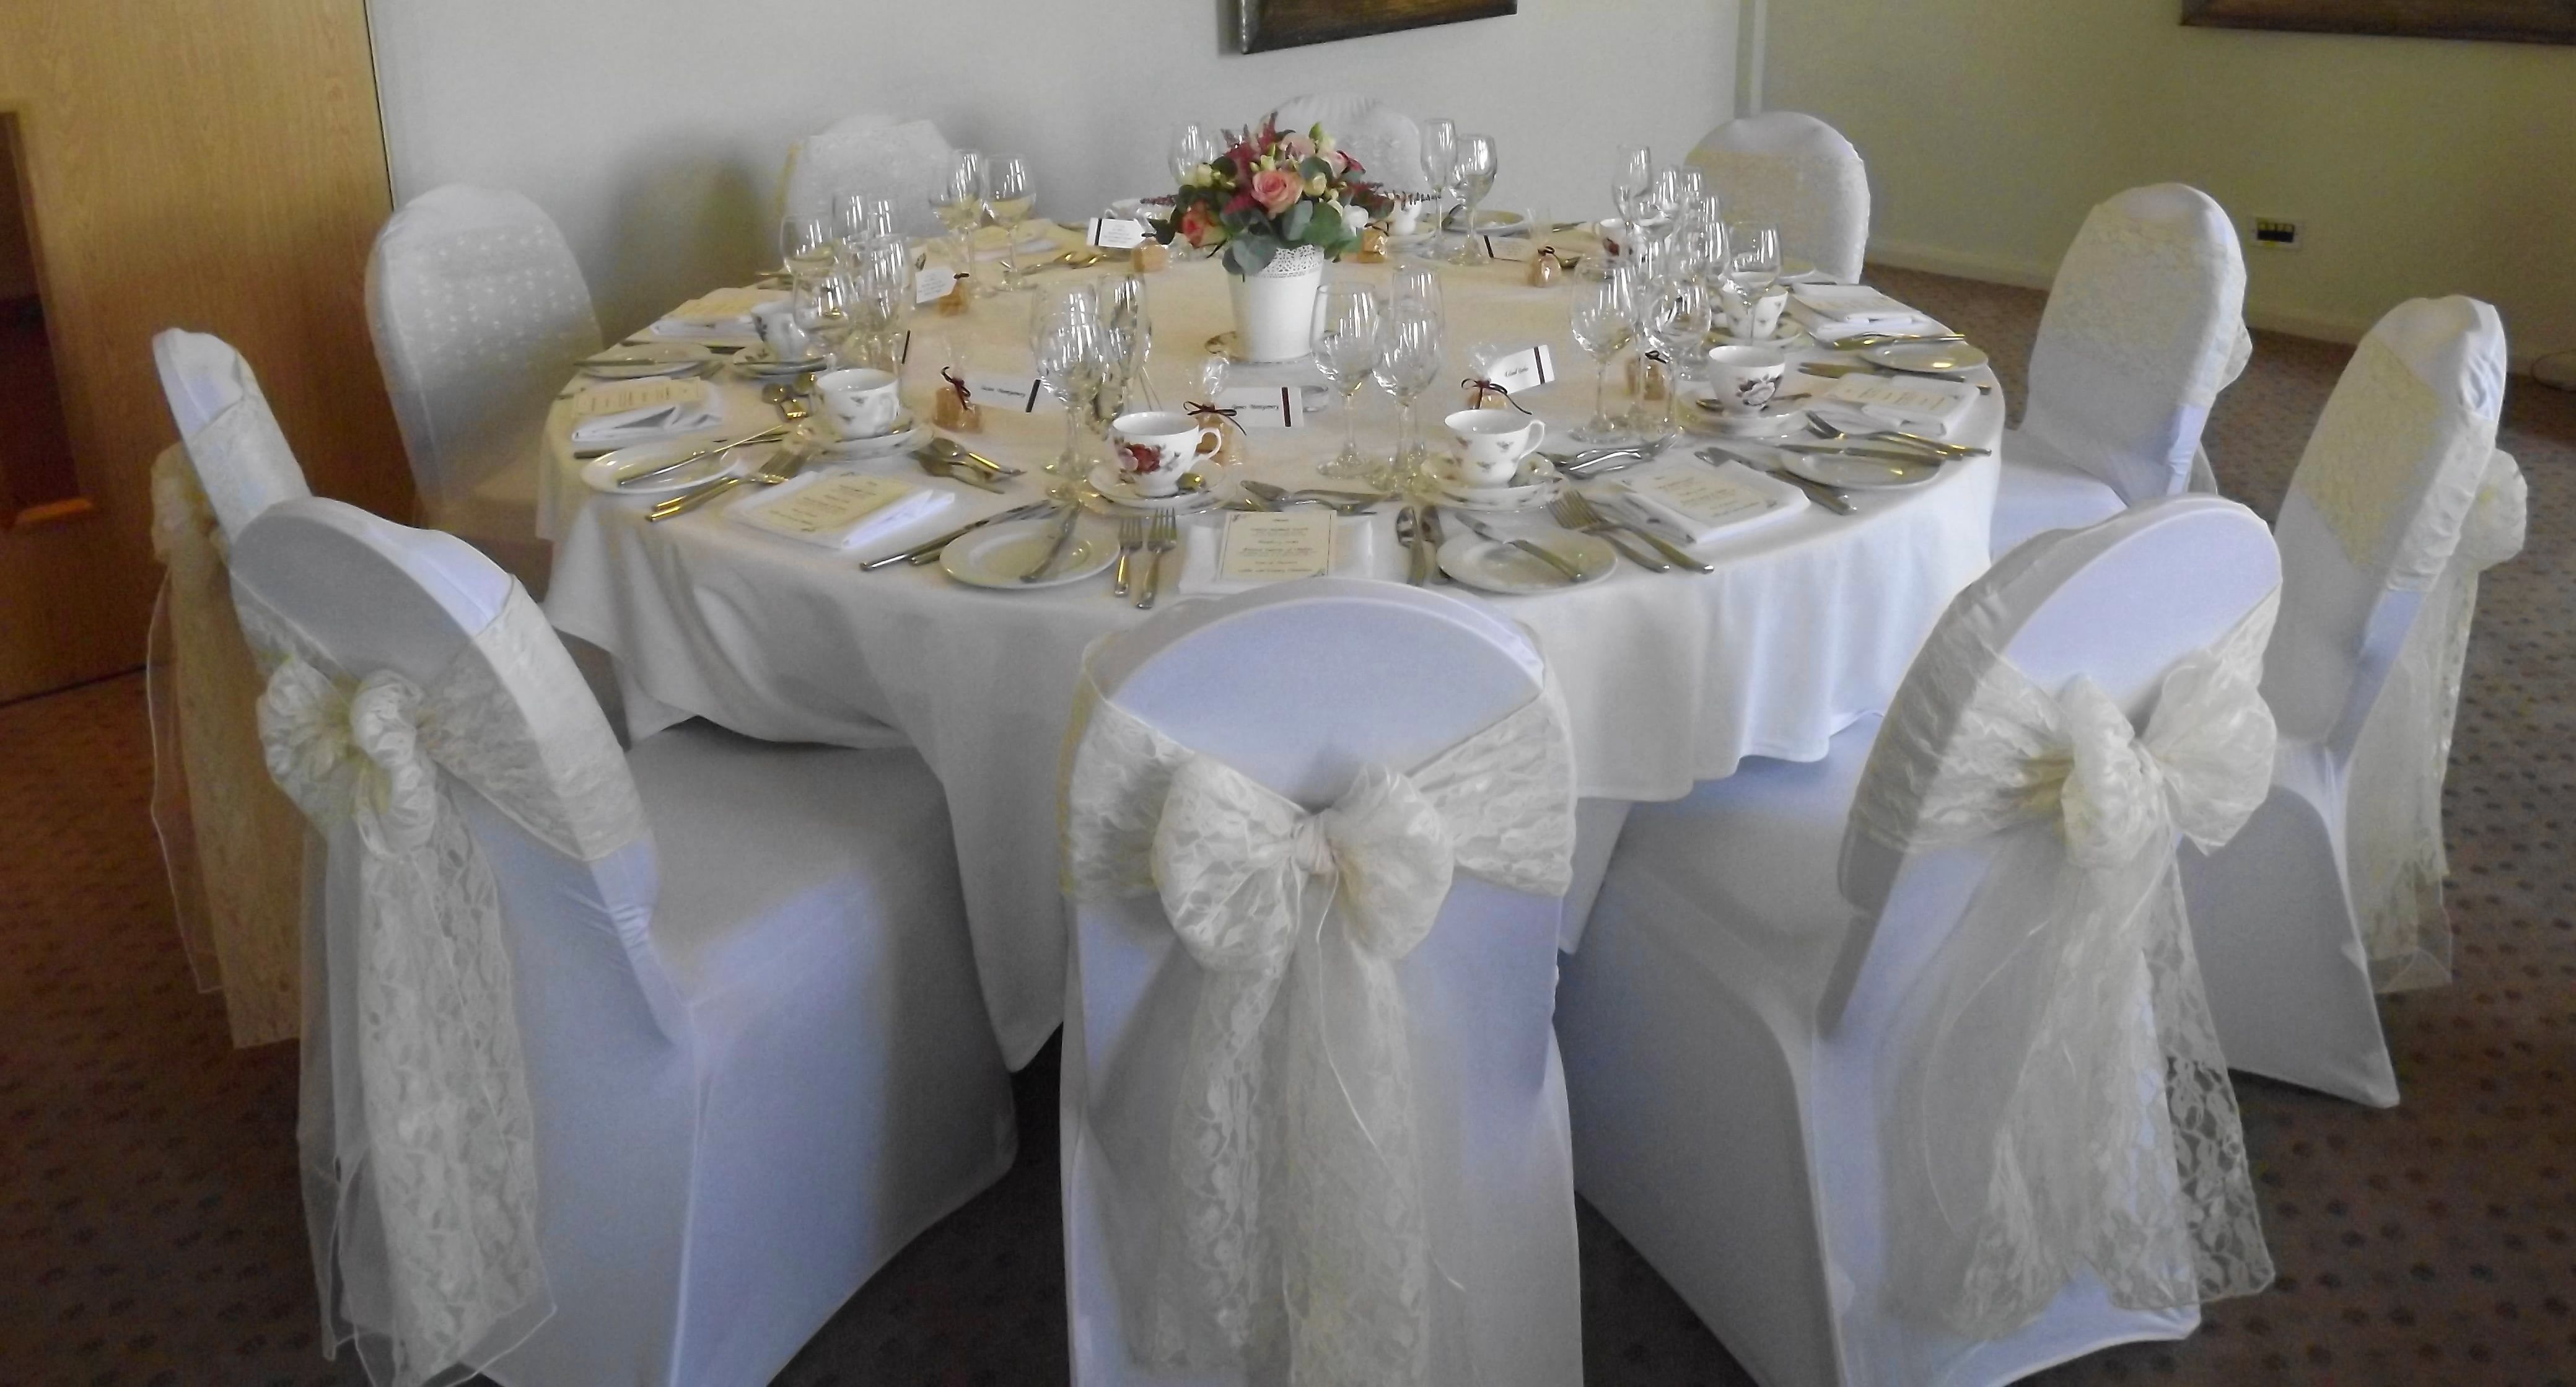 Ivory Lace Sashes Over White Chair Covers Wedding Chair